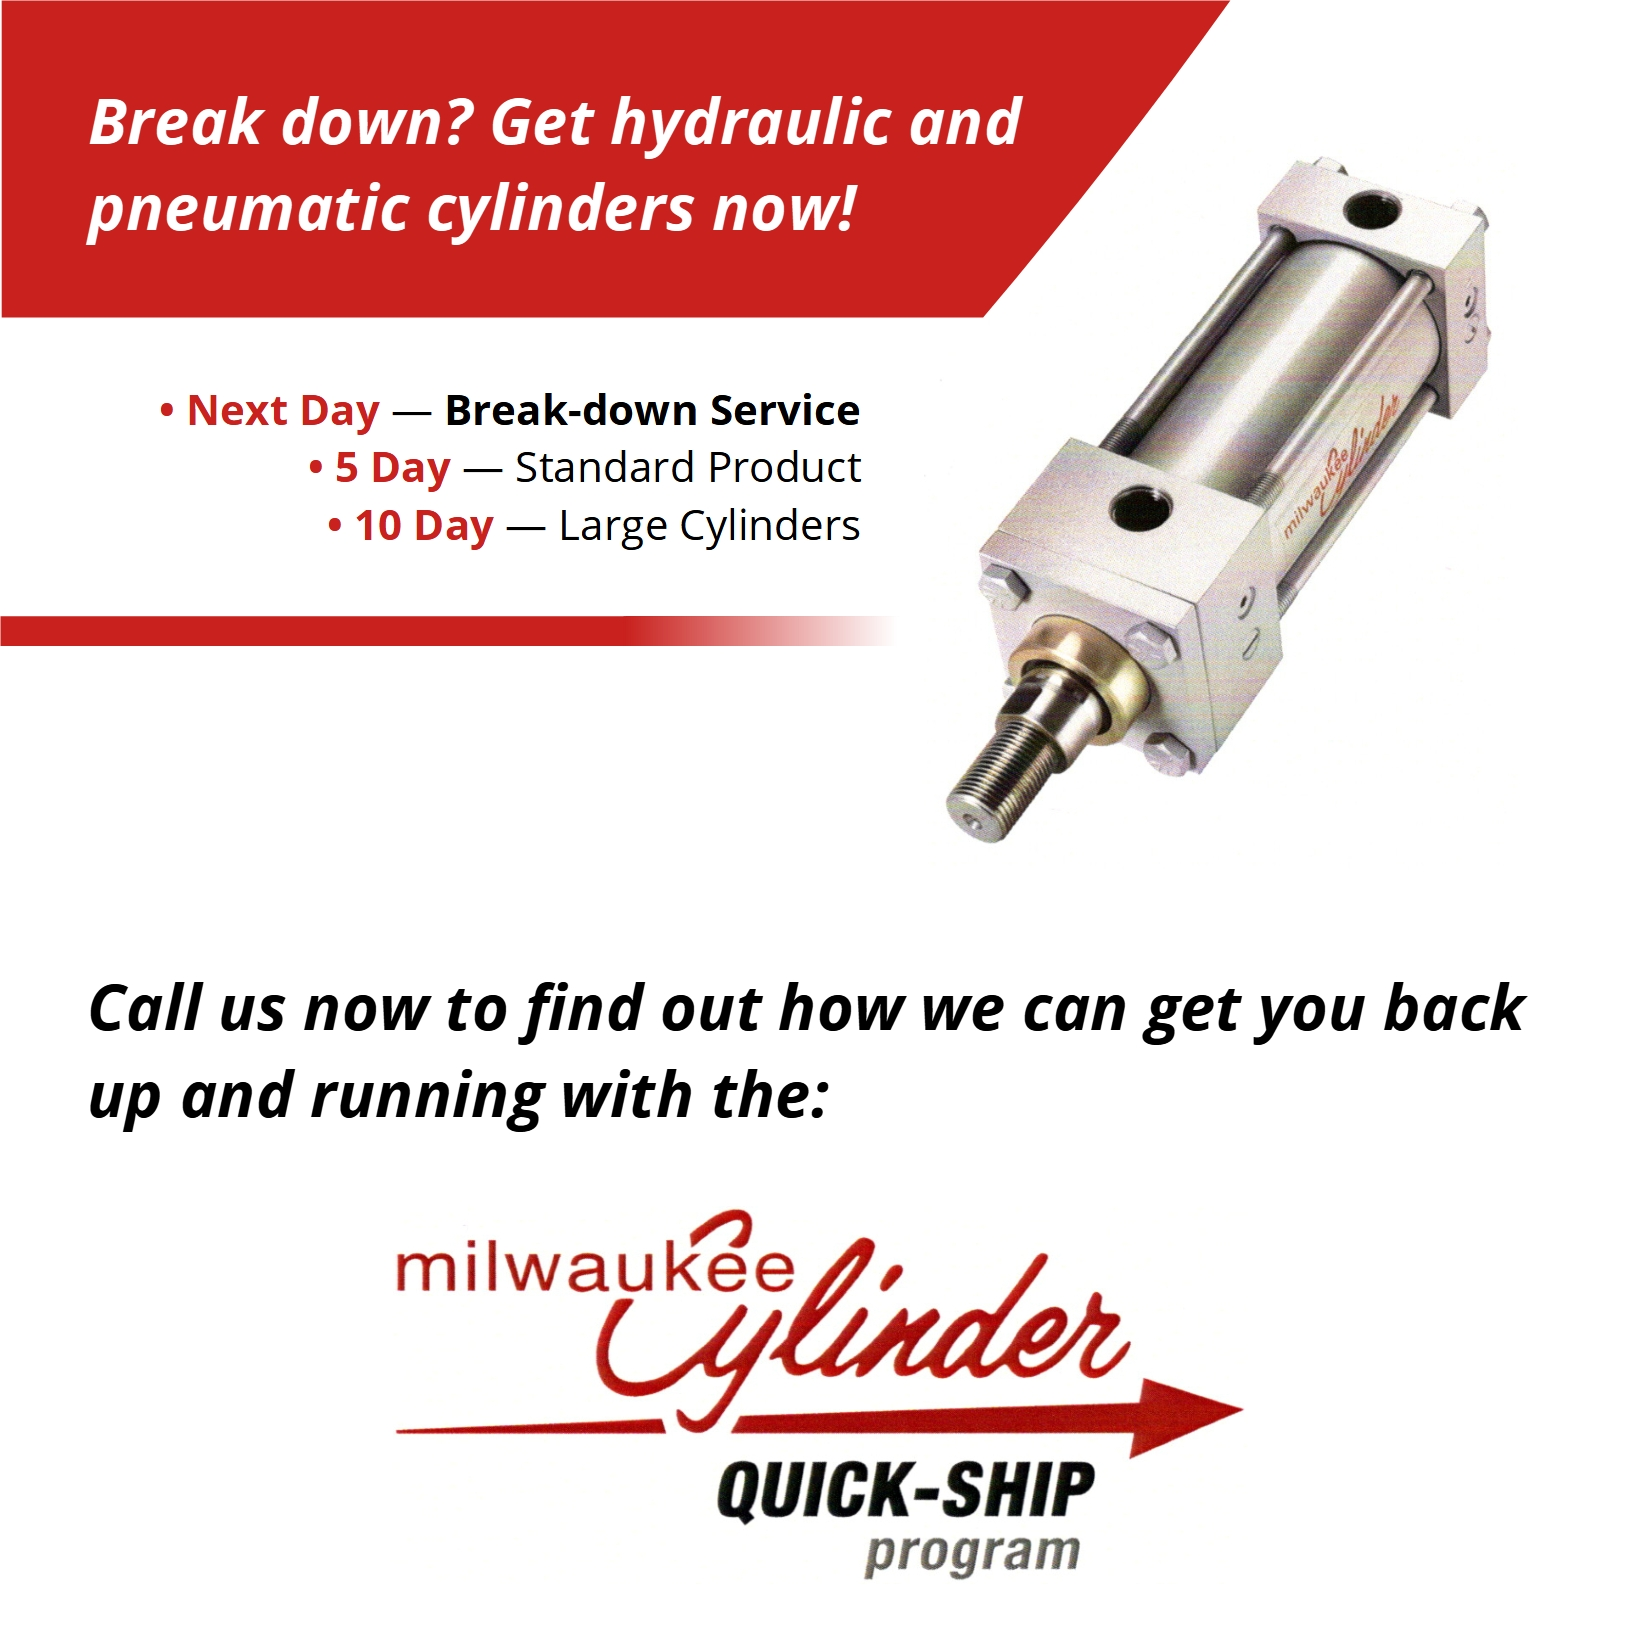 milwaukee_cylinder_quick_ship